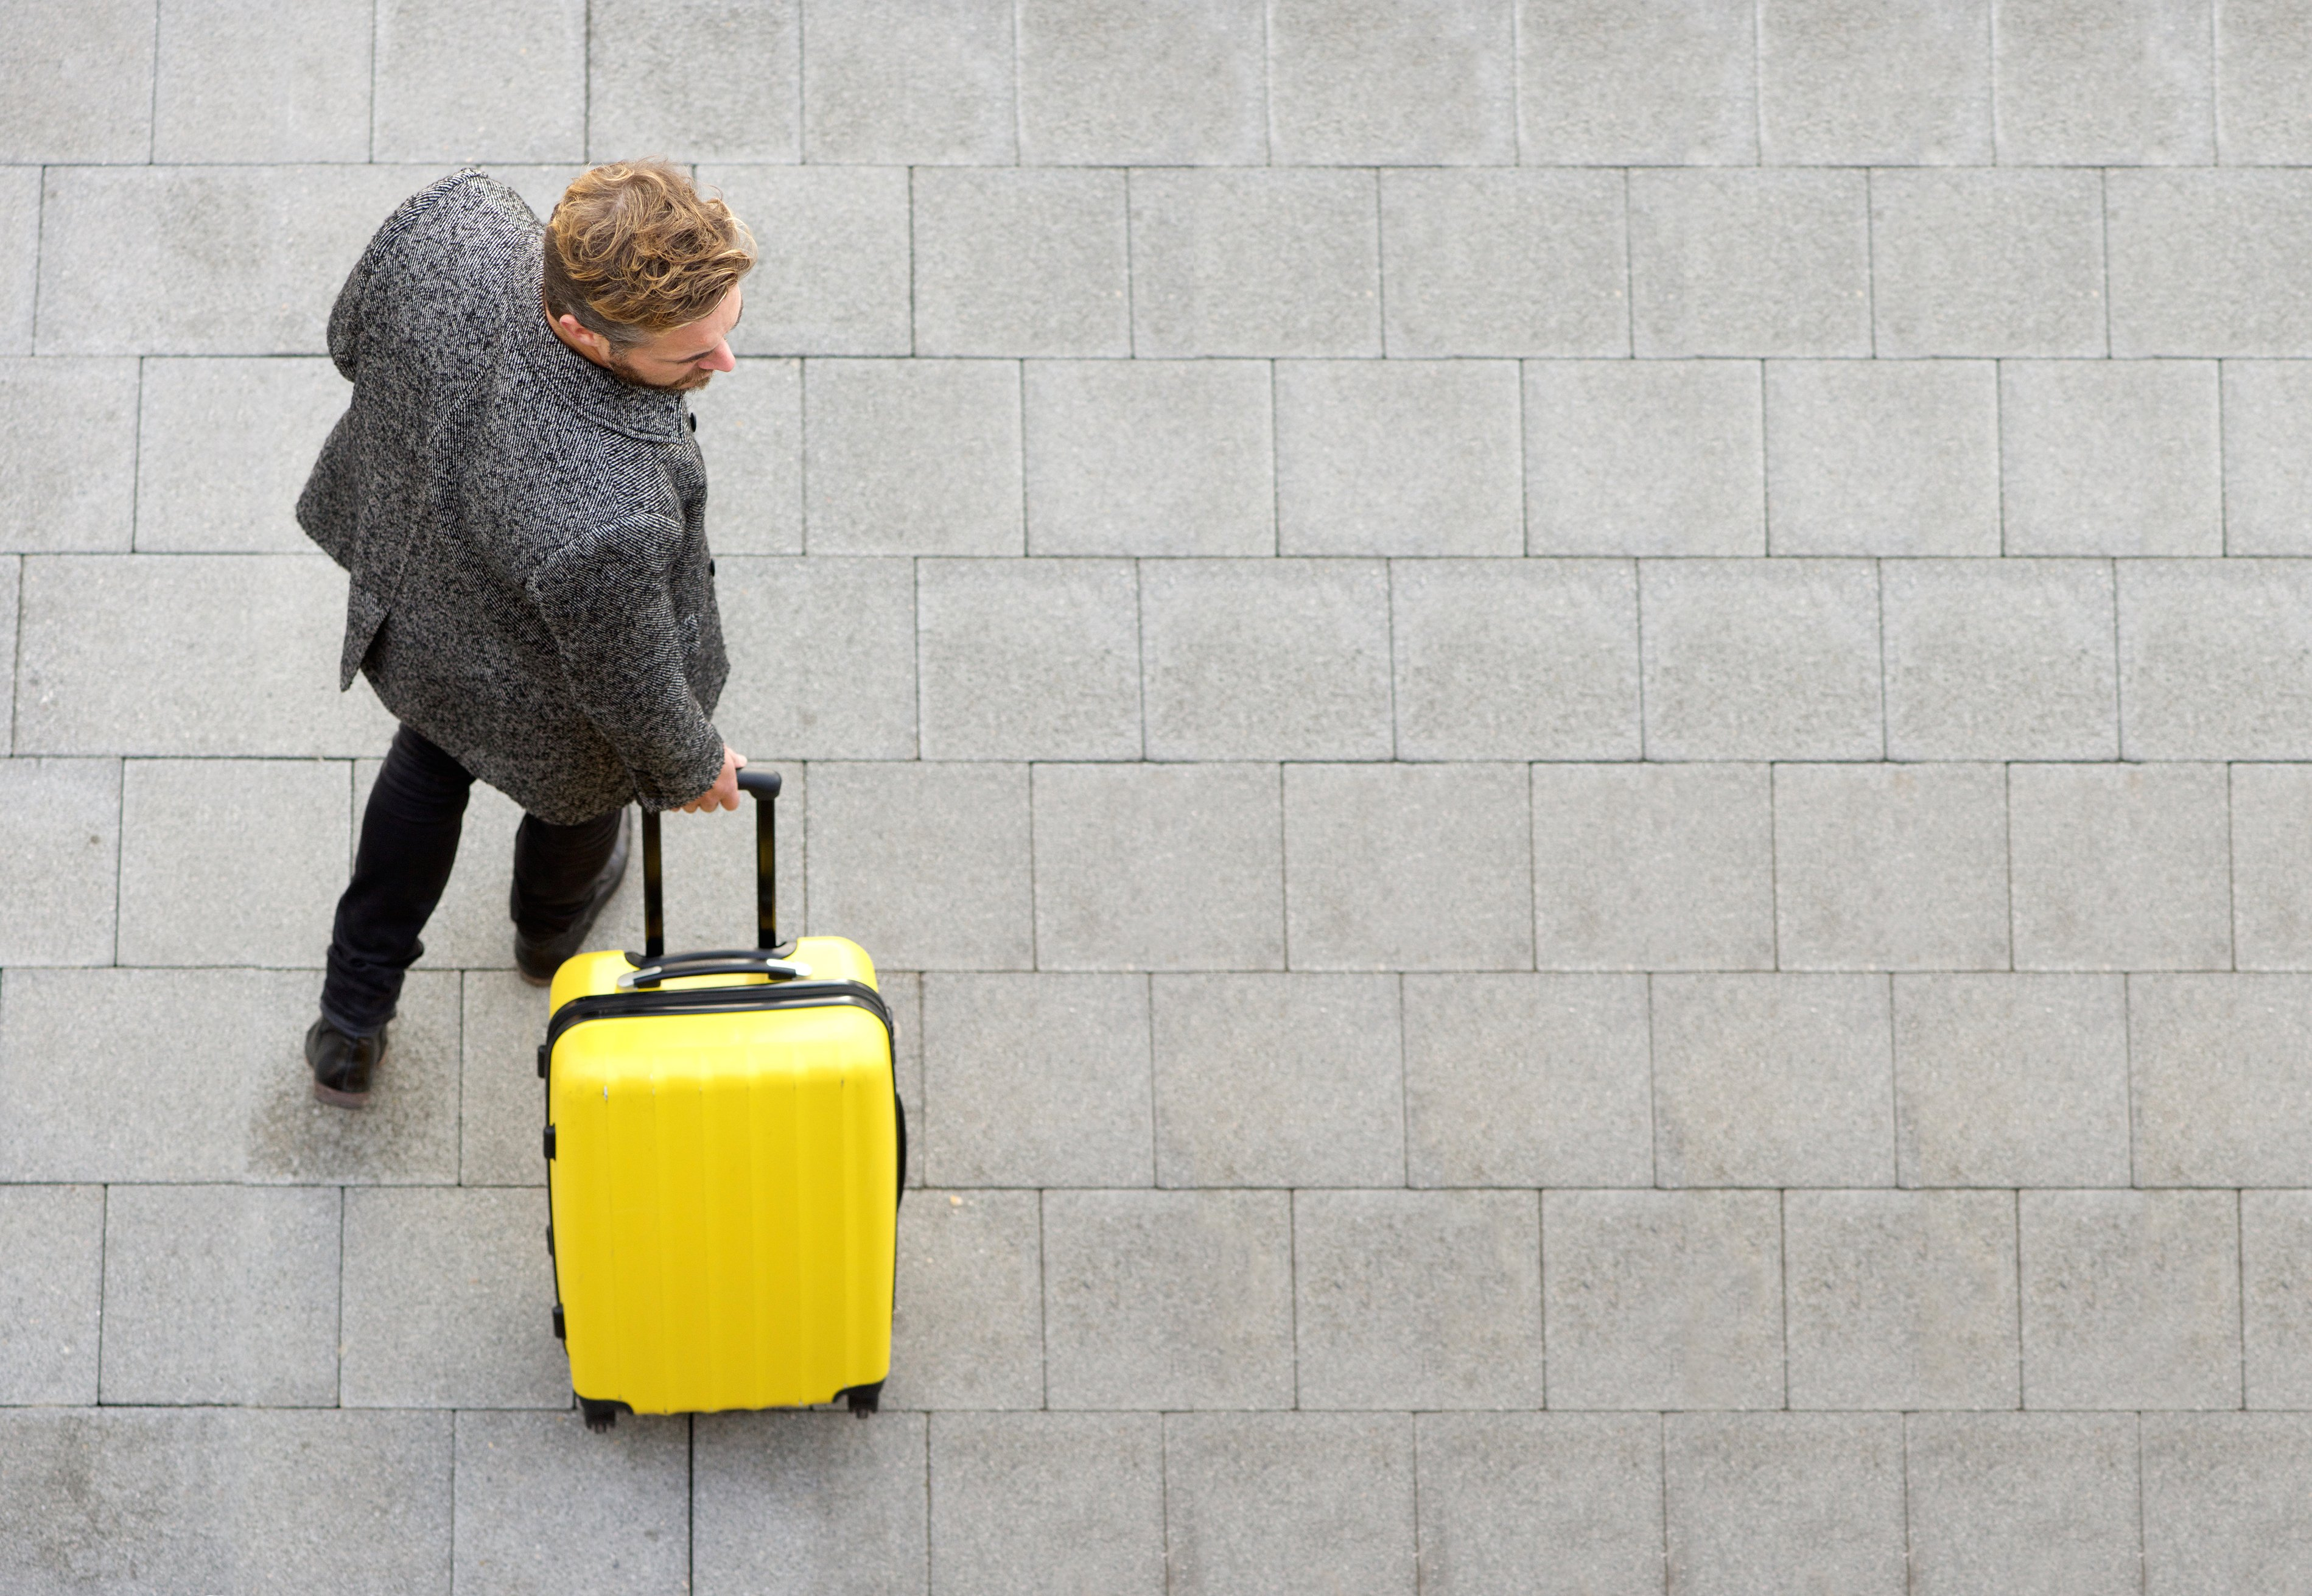 Tourist with luggage